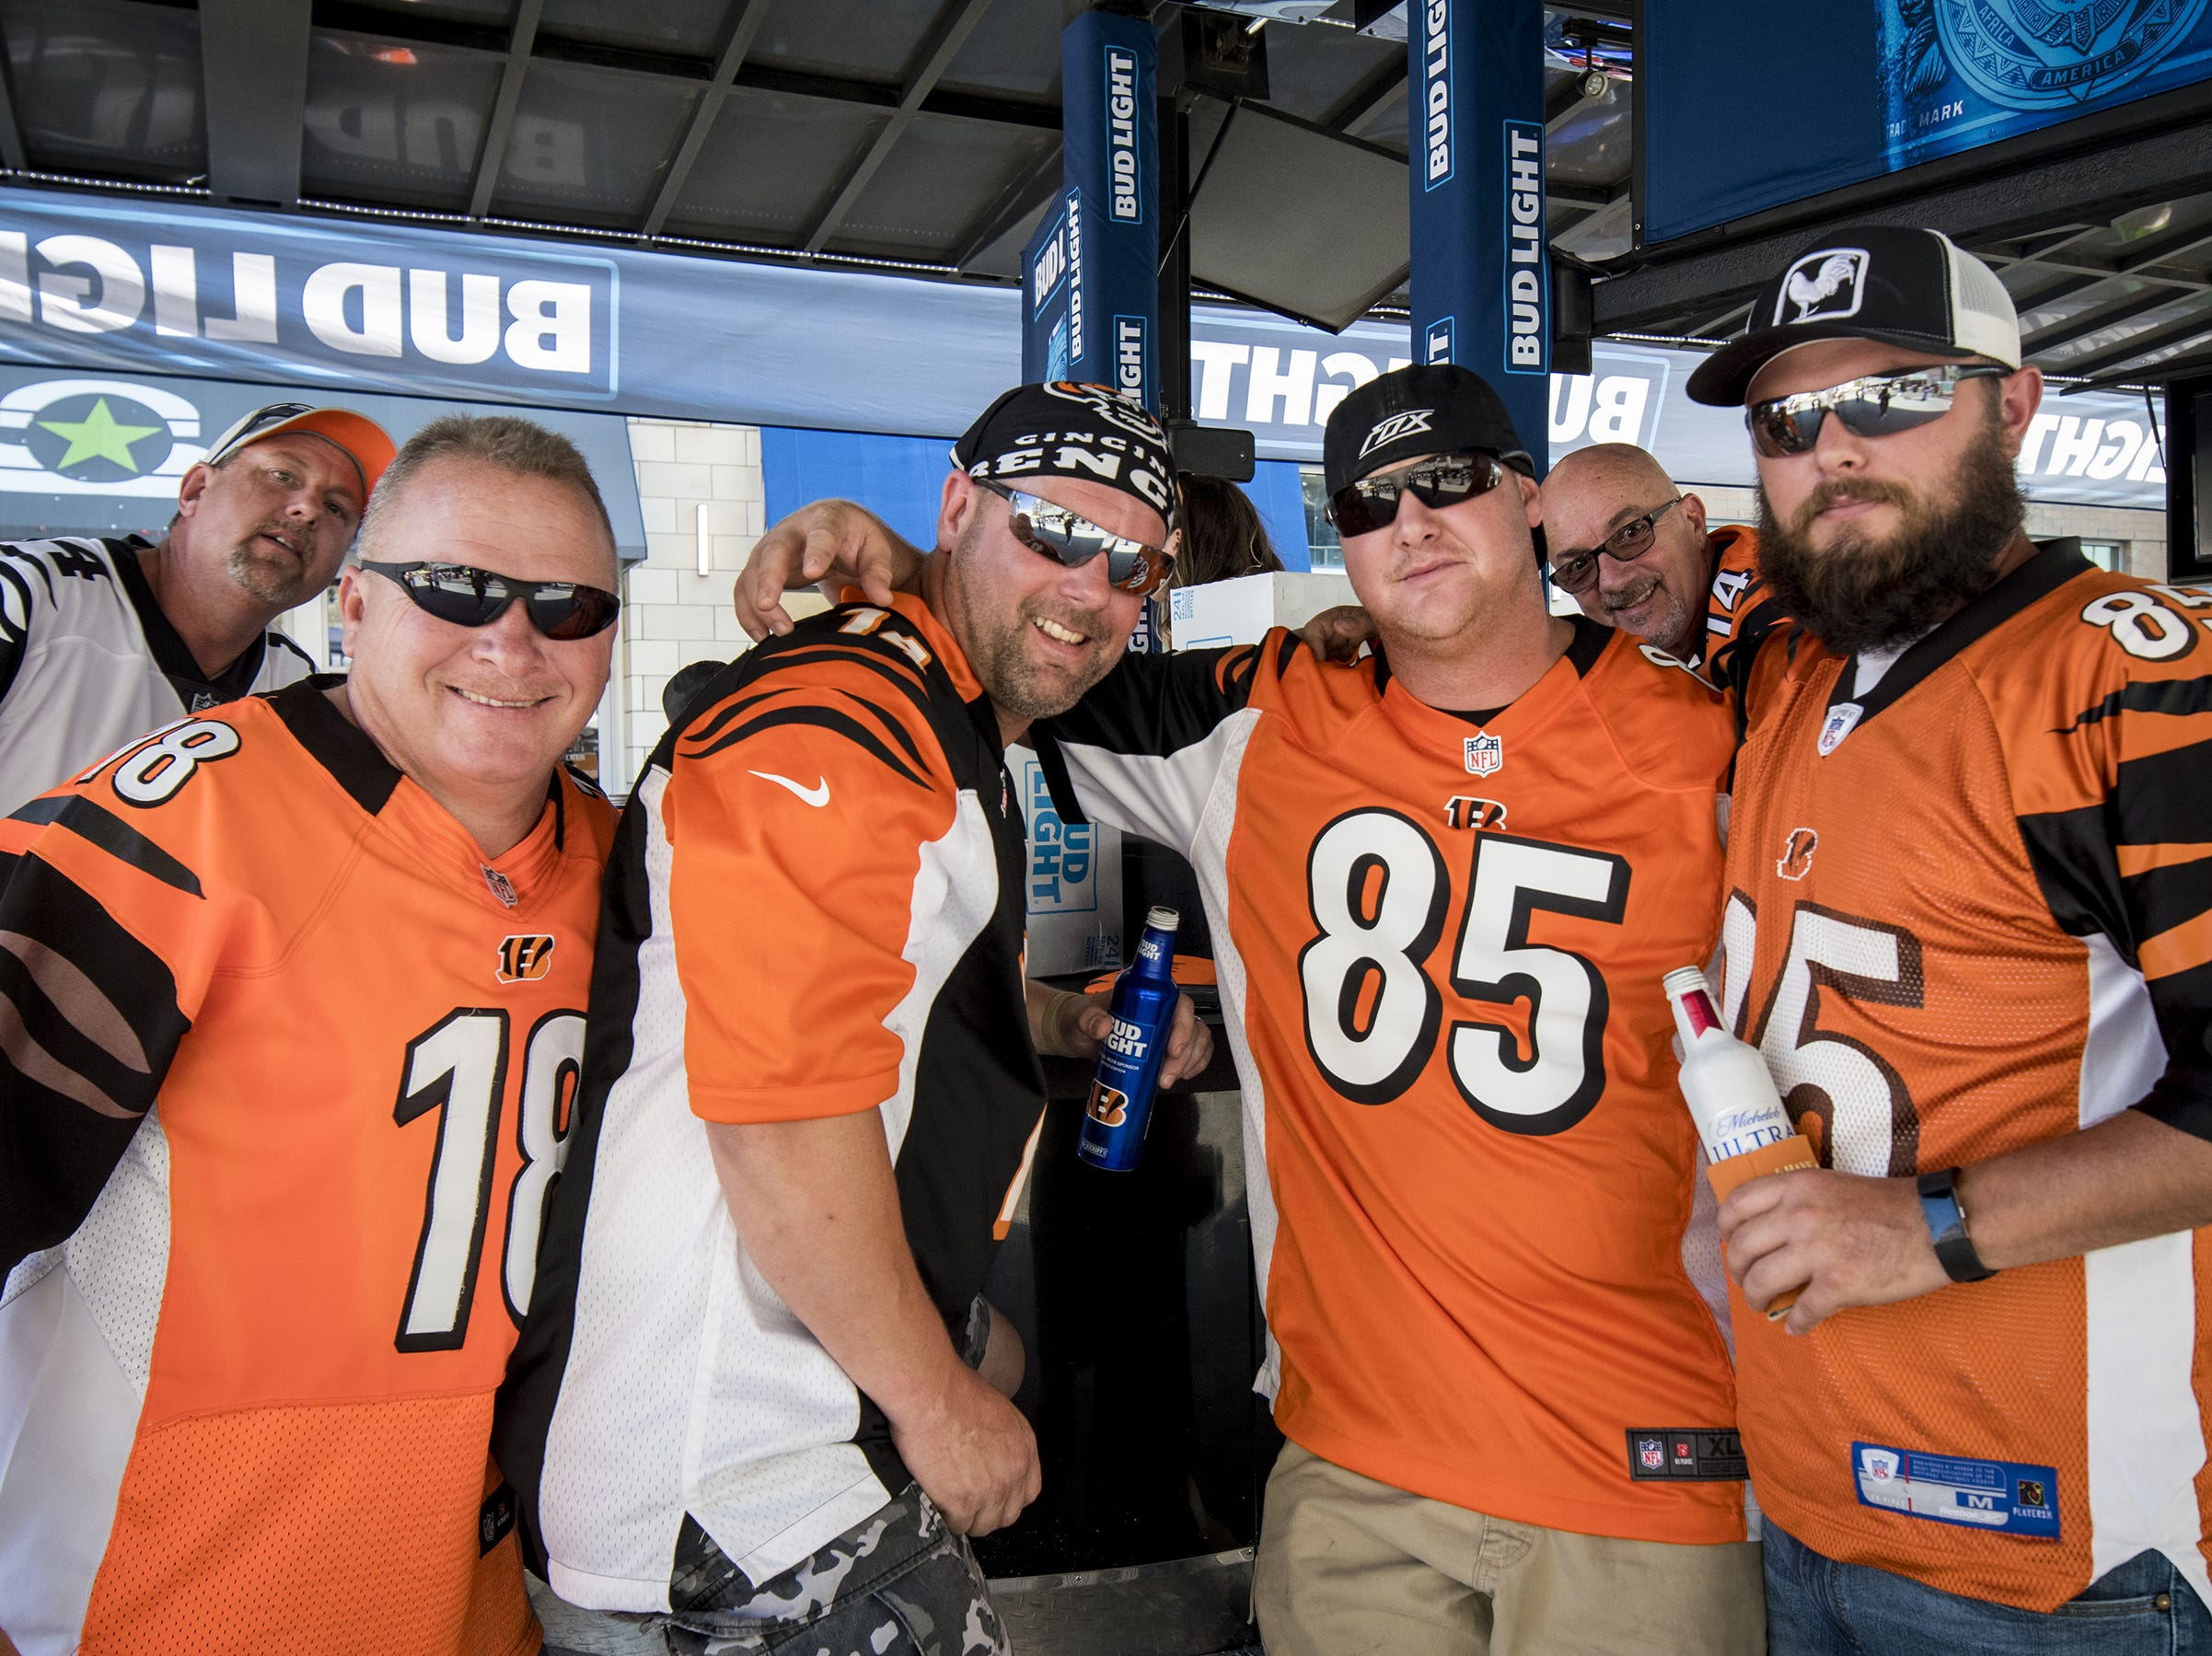 Bengals fans Will Horn, Chris Hack, Dennis Meade and Josh Napier hang out at the Bud Light Tailgate zone before the Bengals game against the Baltimore Ravens Thursday, September 13, 2018 in Cincinnati, Ohio.